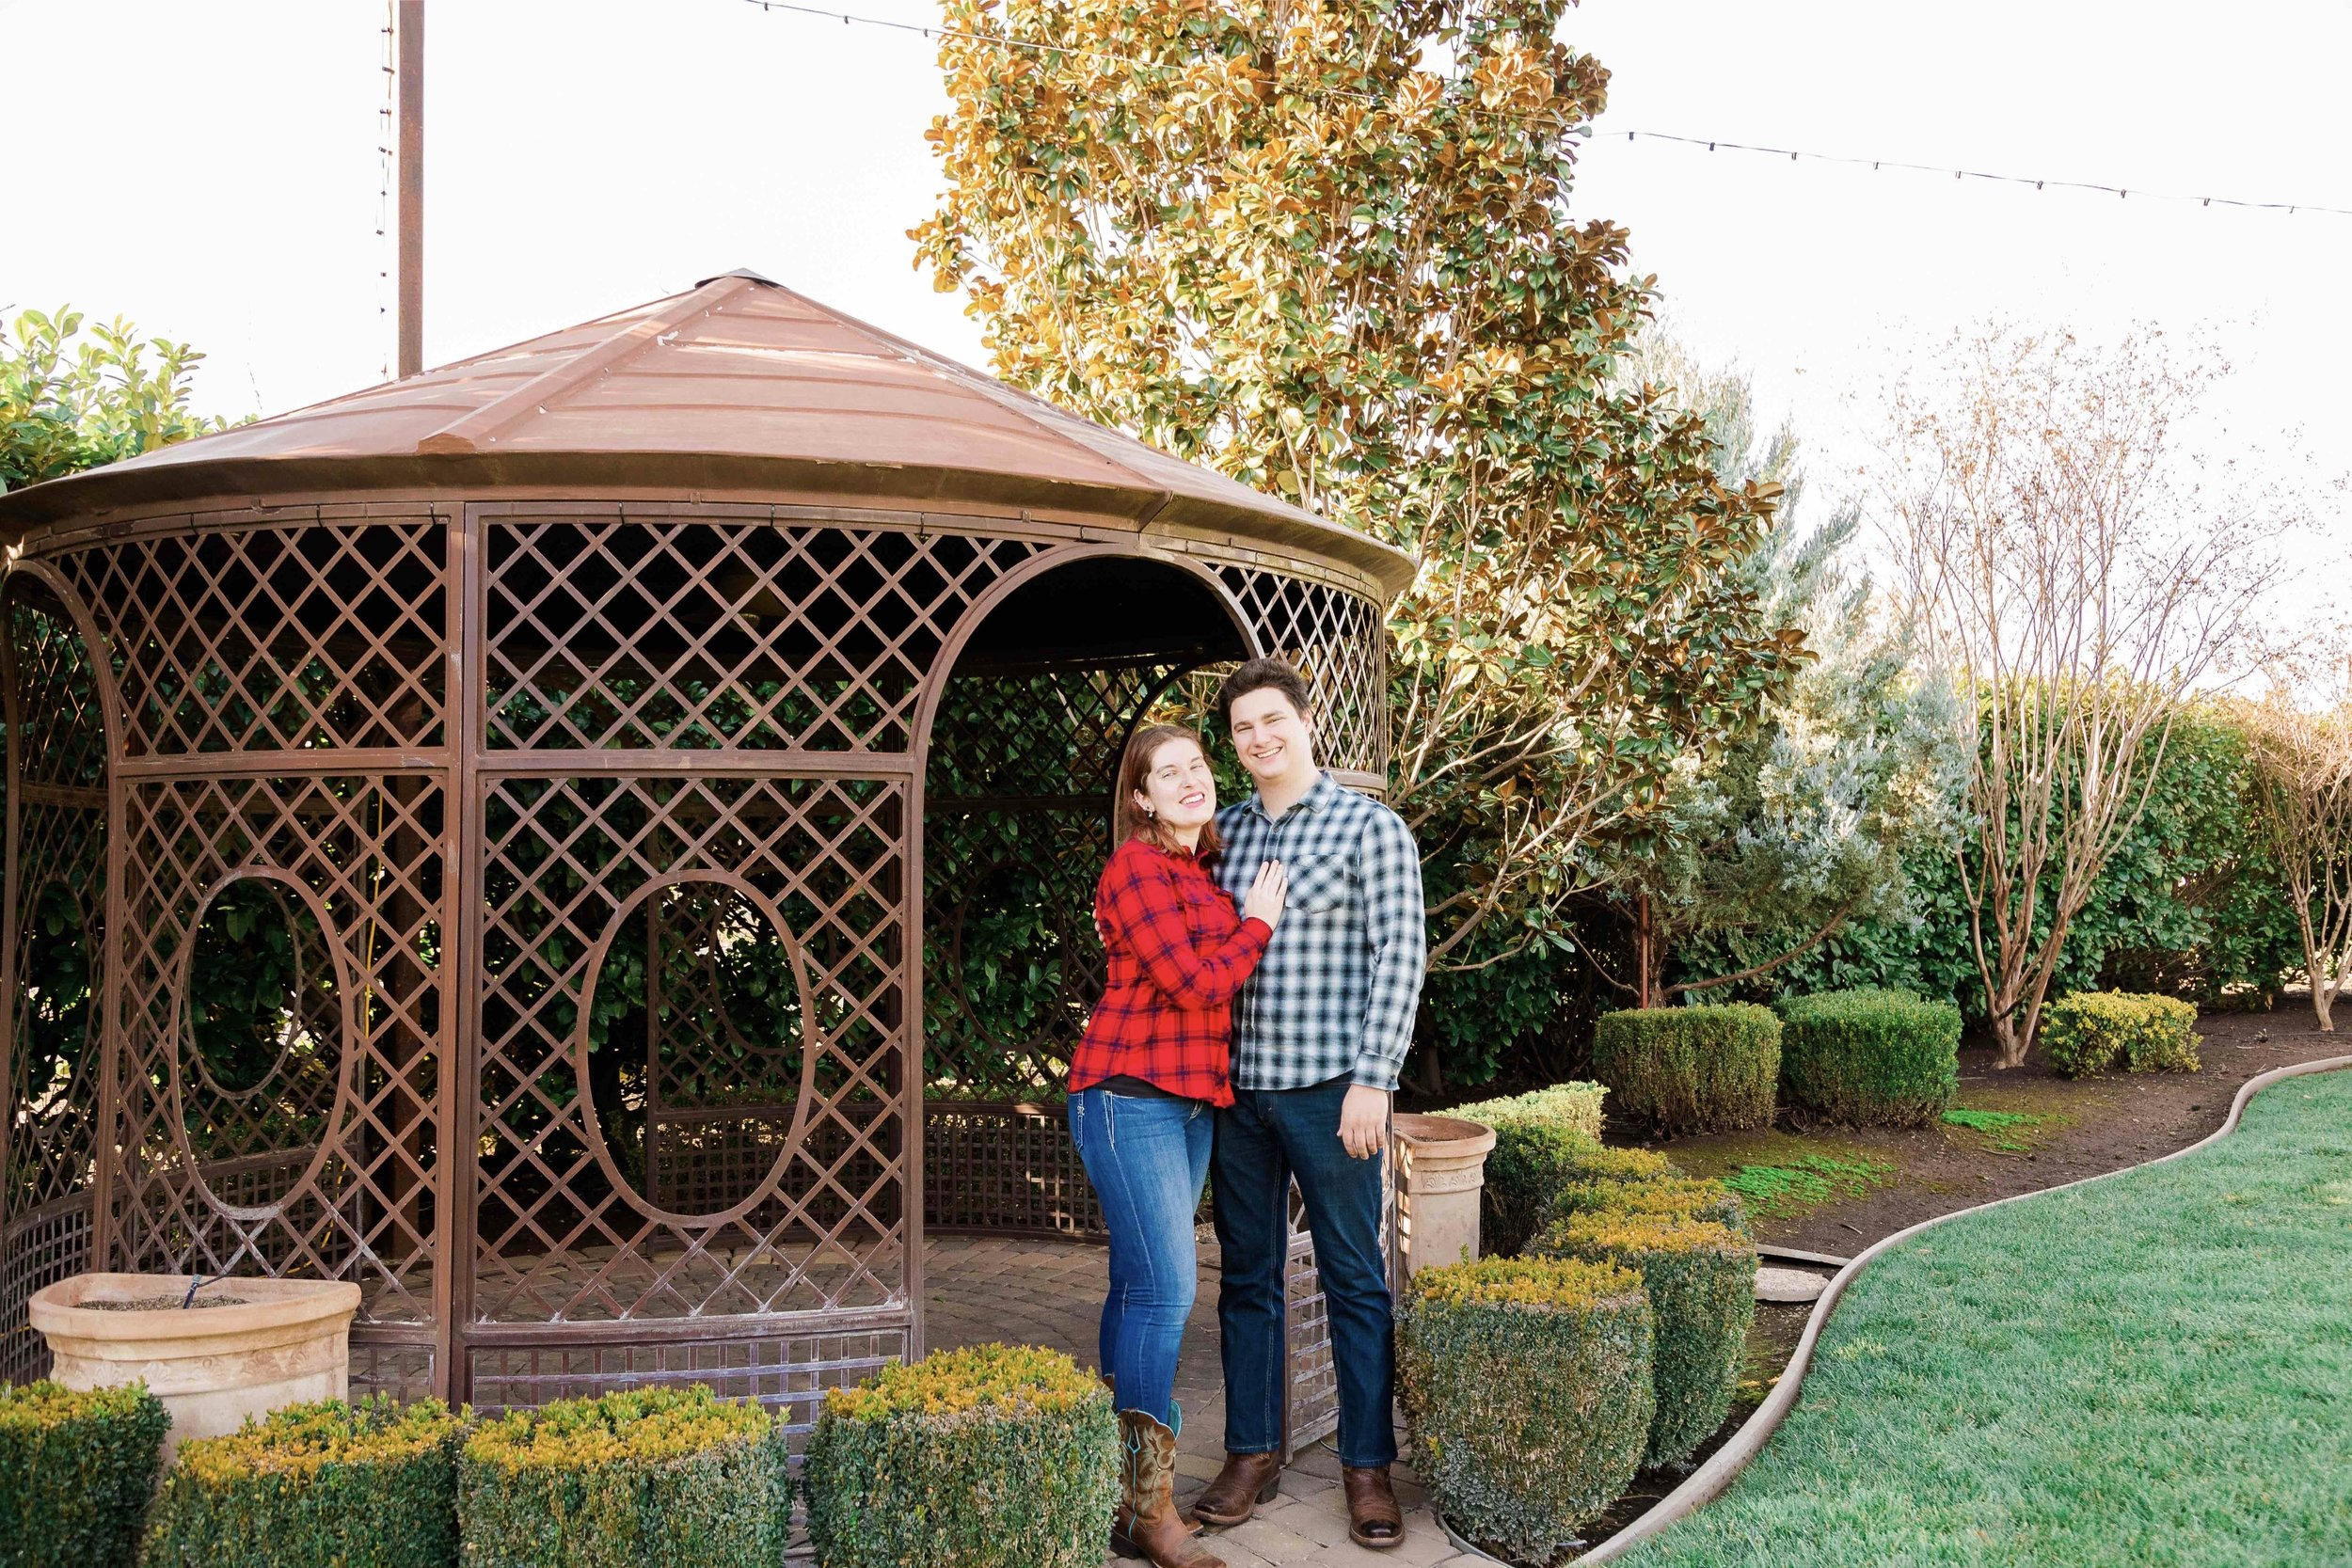 Chico california engagement photographer_21.jpg